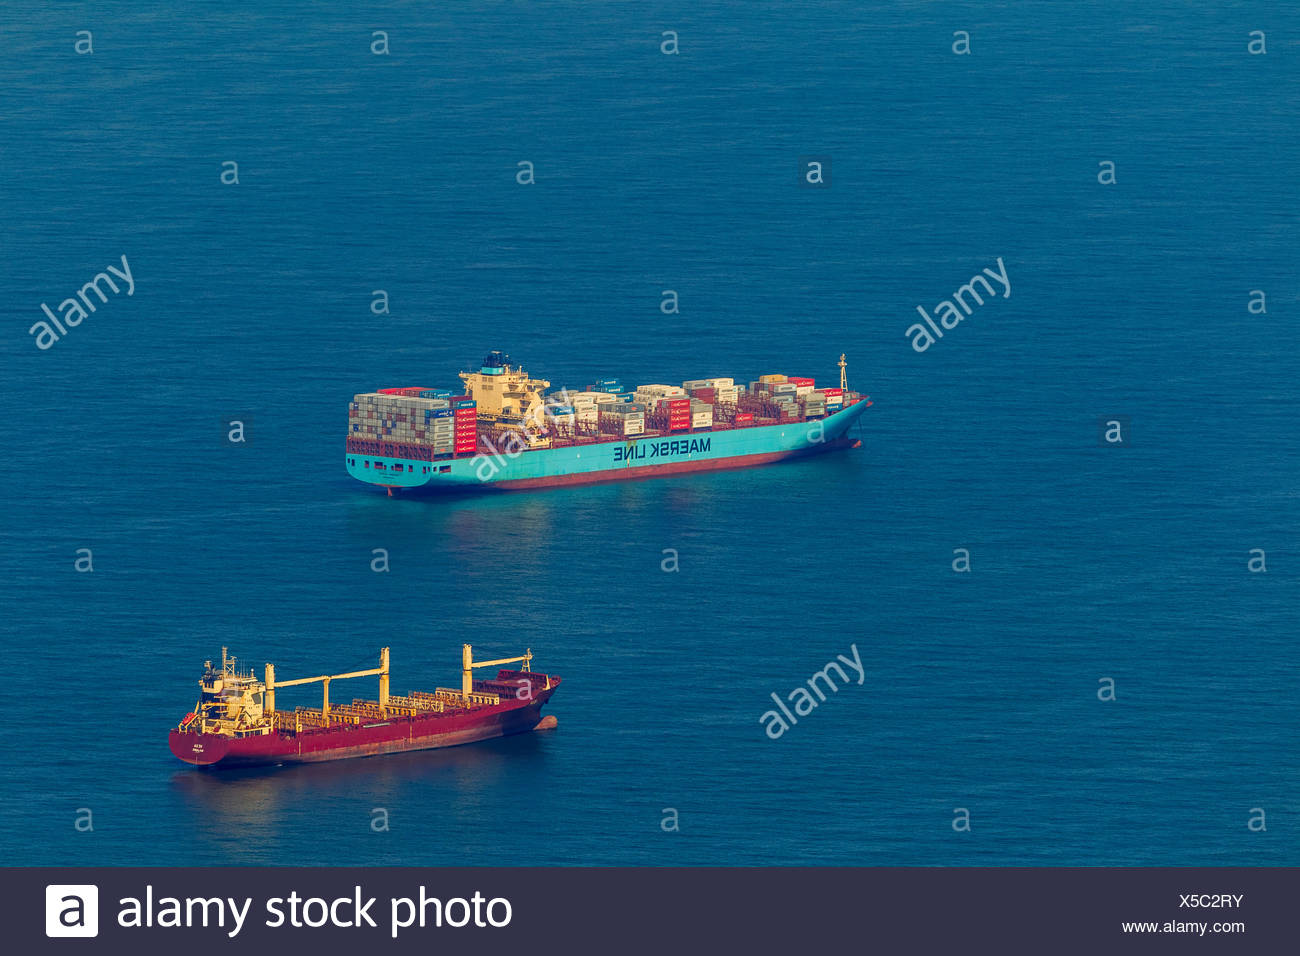 Aerial view, cargo ships at anchor, shipping line, shipping route, ships at sea, coastal waters, off Wangerooge, North Sea - Stock Image